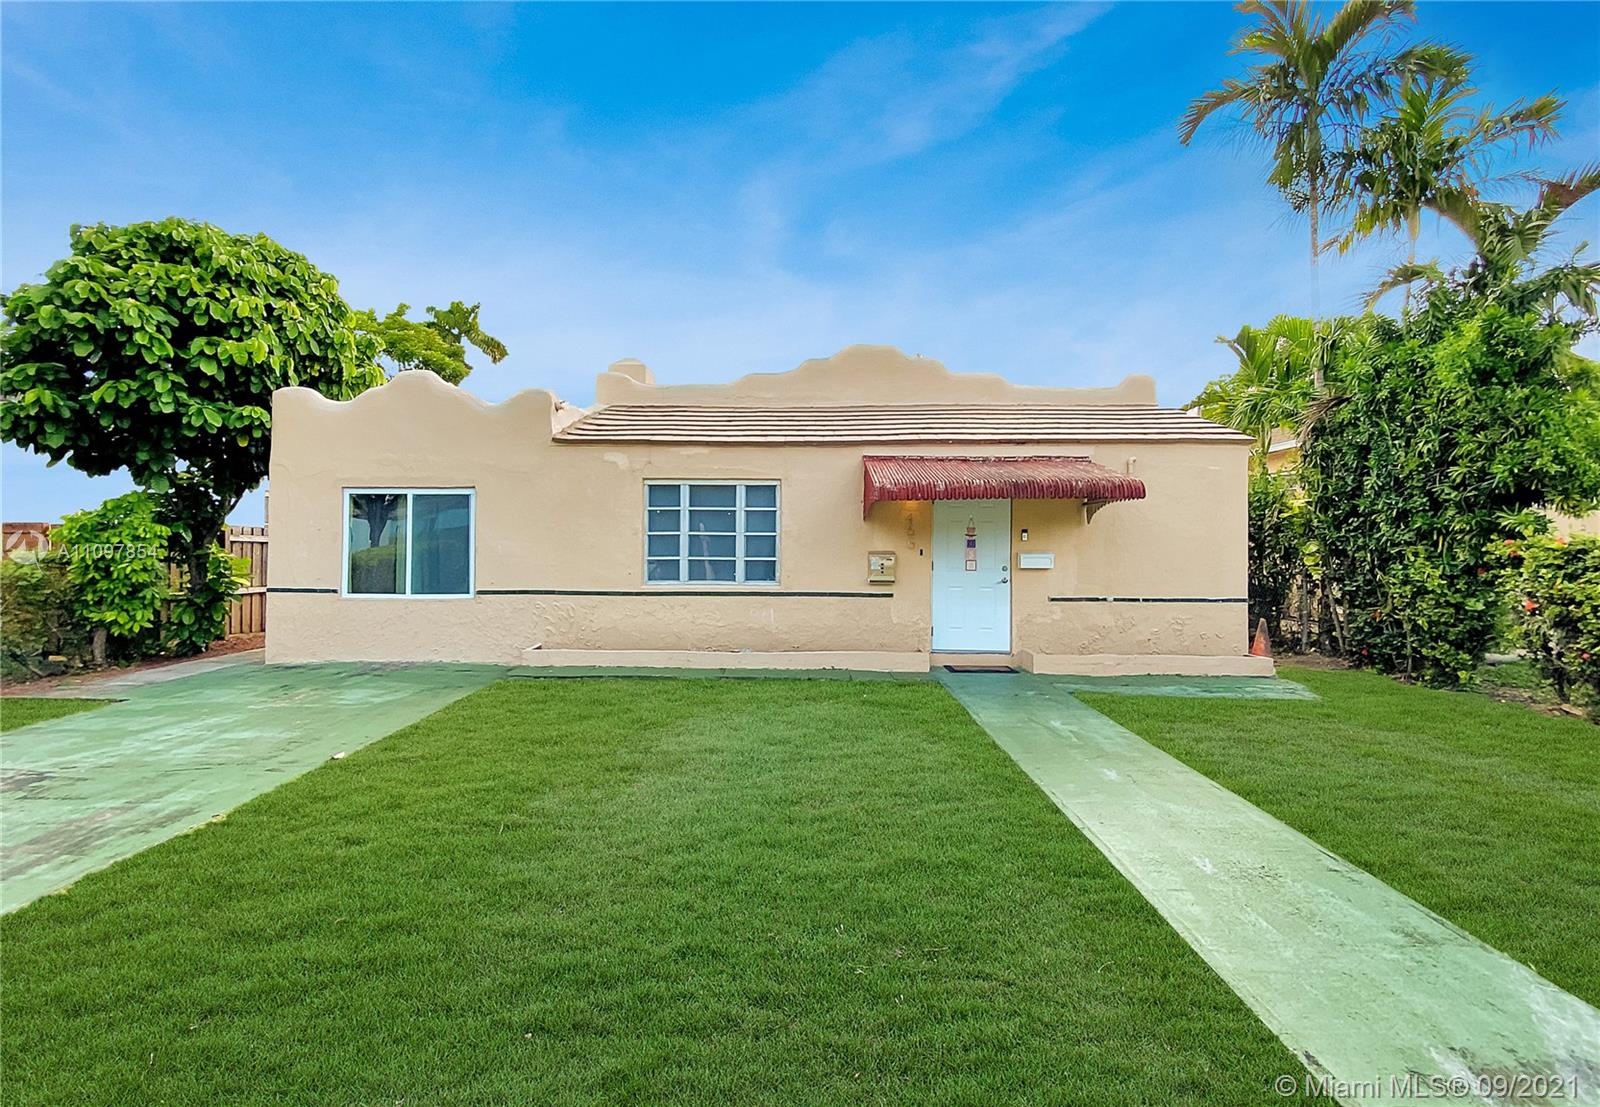 Single Family Home,For Sale,465 South Dr, Miami Springs, Florida 33166,Brickell,realty,broker,condos near me